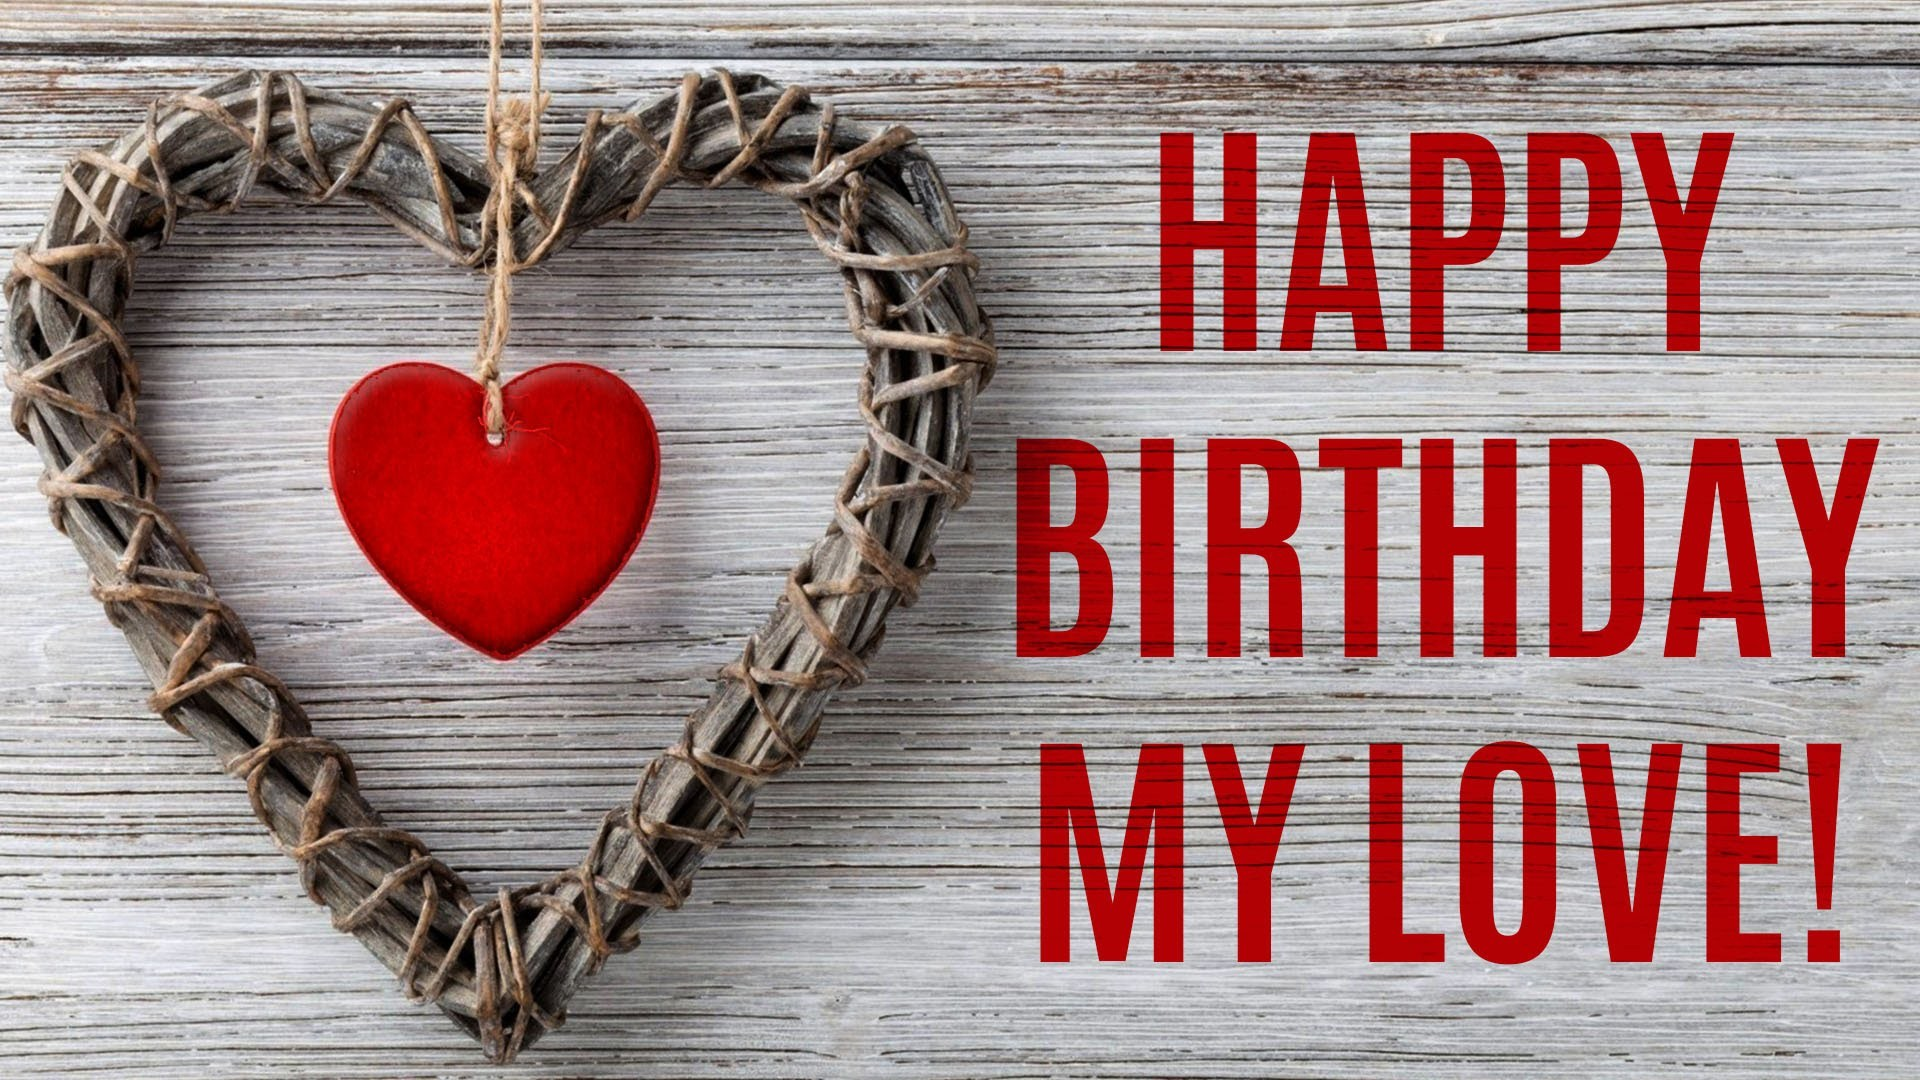 Lover Wallpaper Birthday : Happy Birthday Love Wallpaper (53+ images)